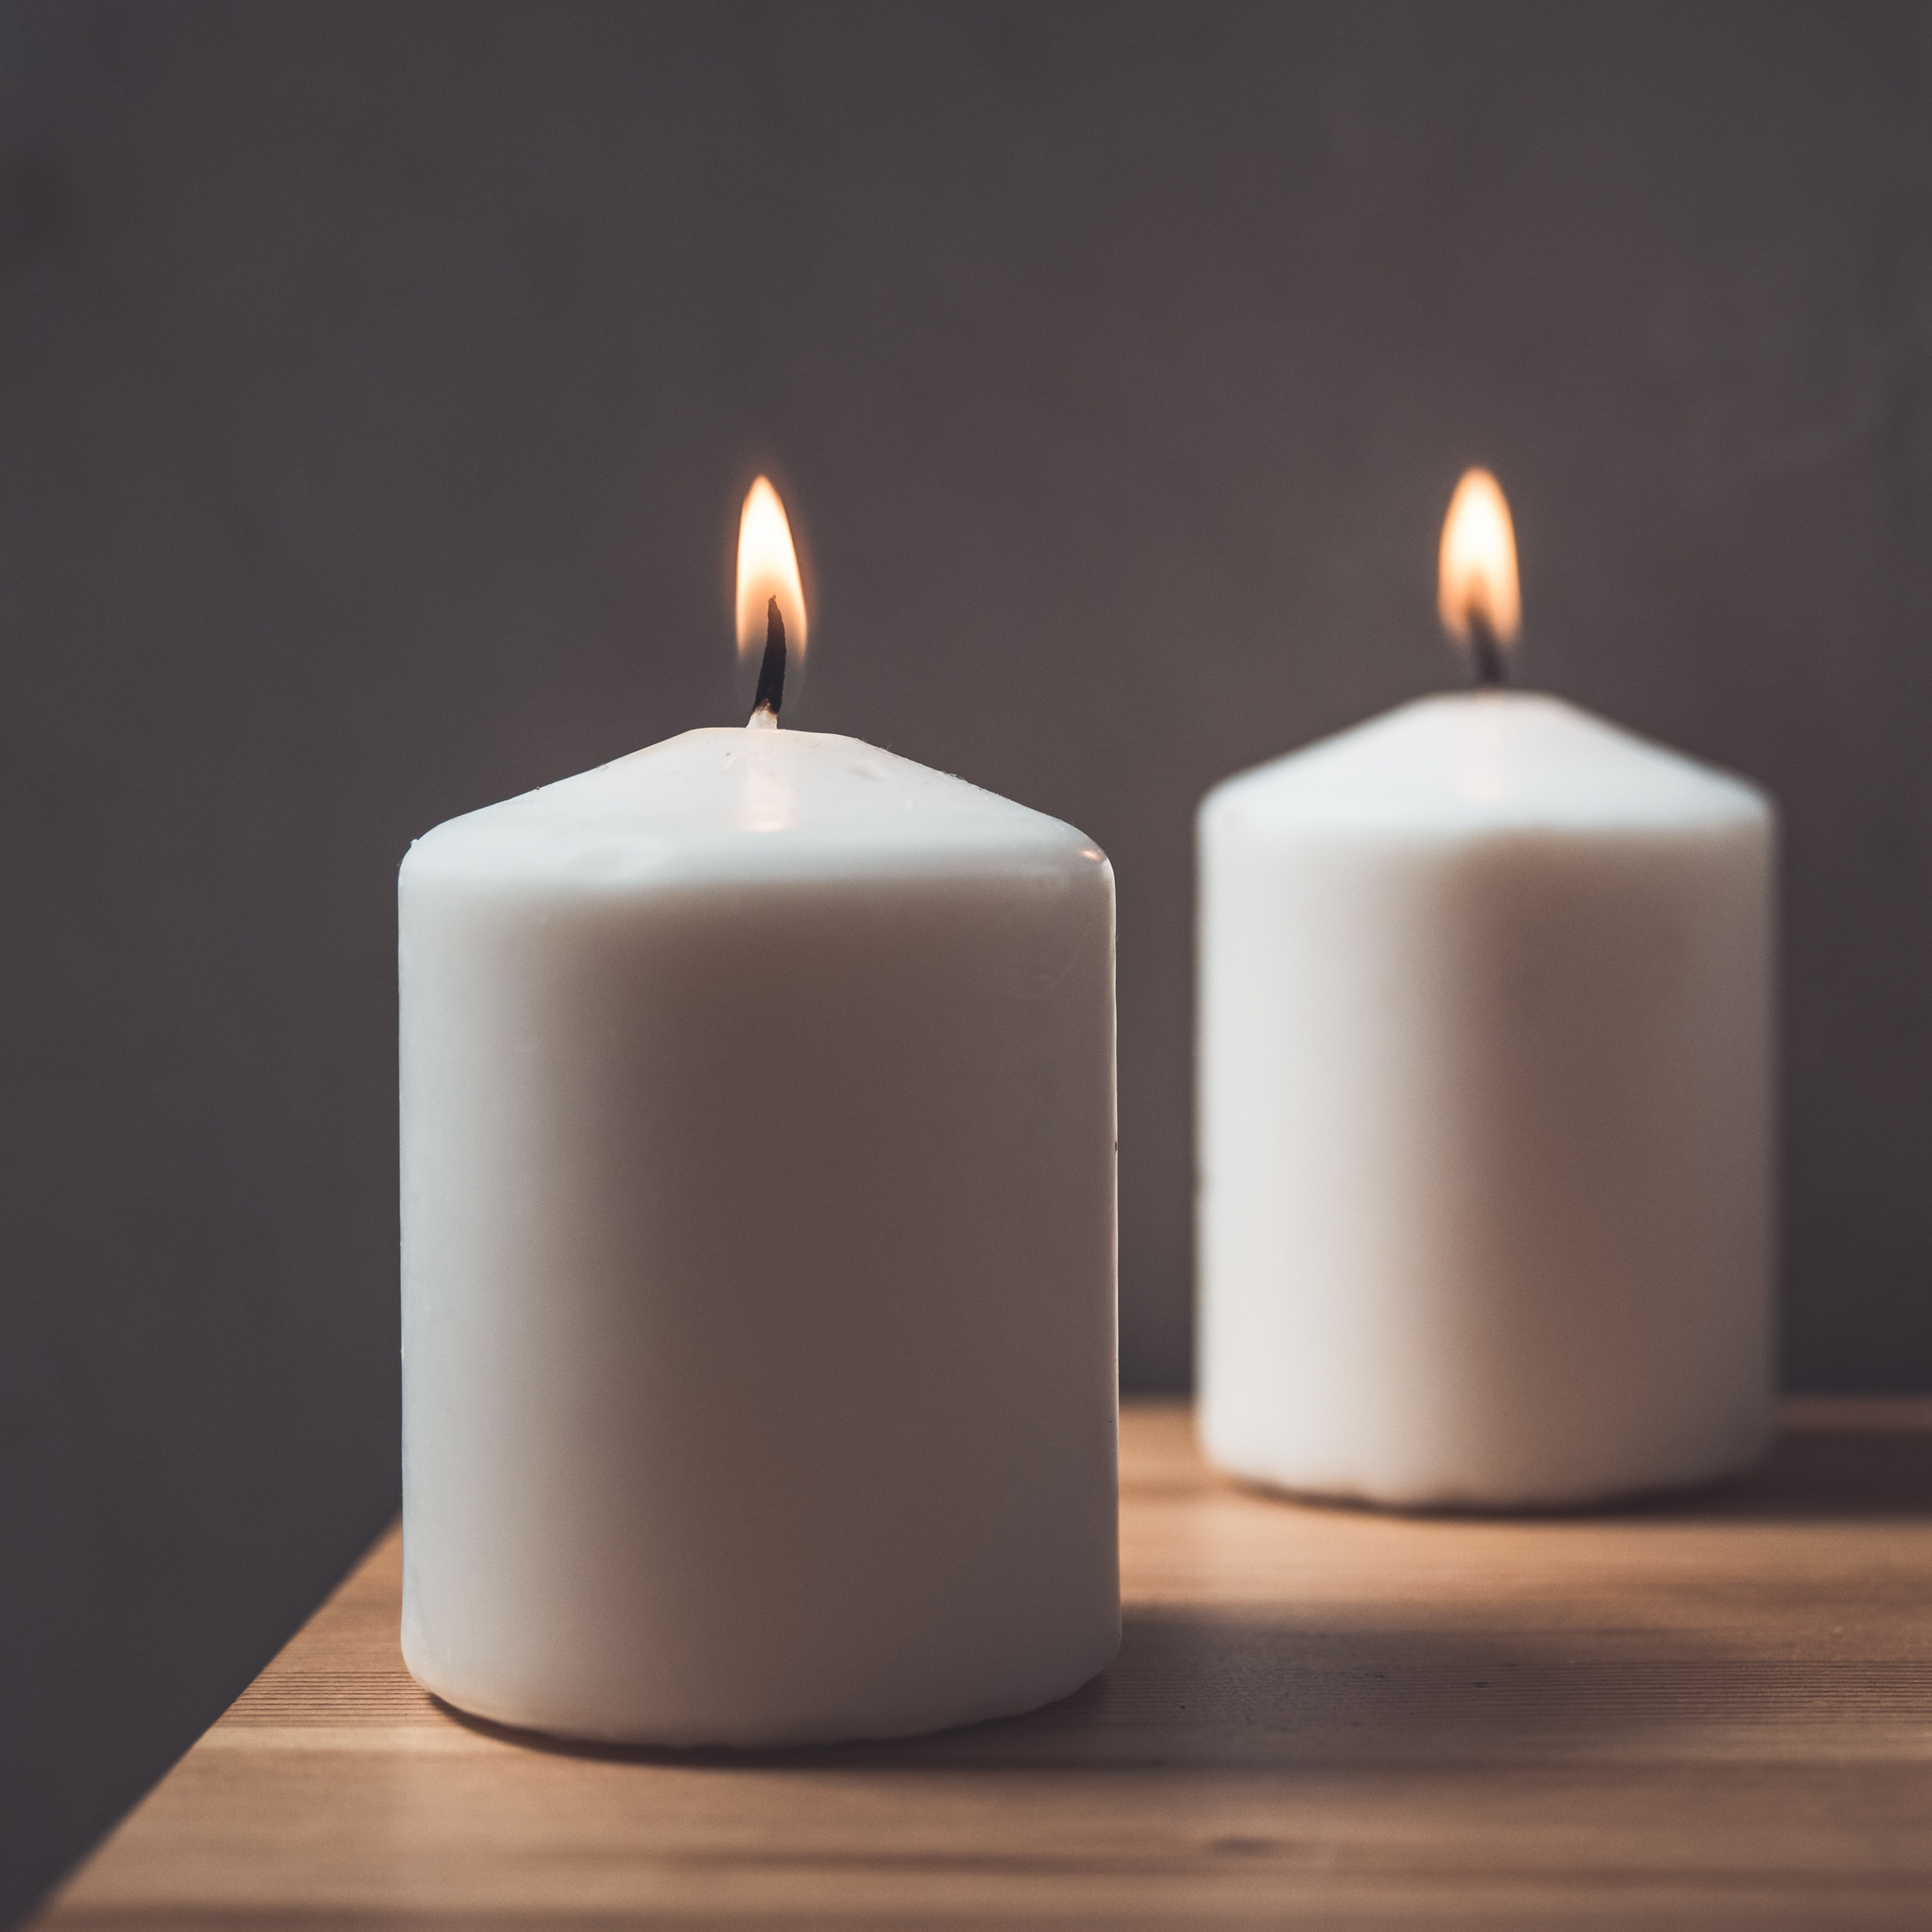 Candles Interior Design for Working From Home